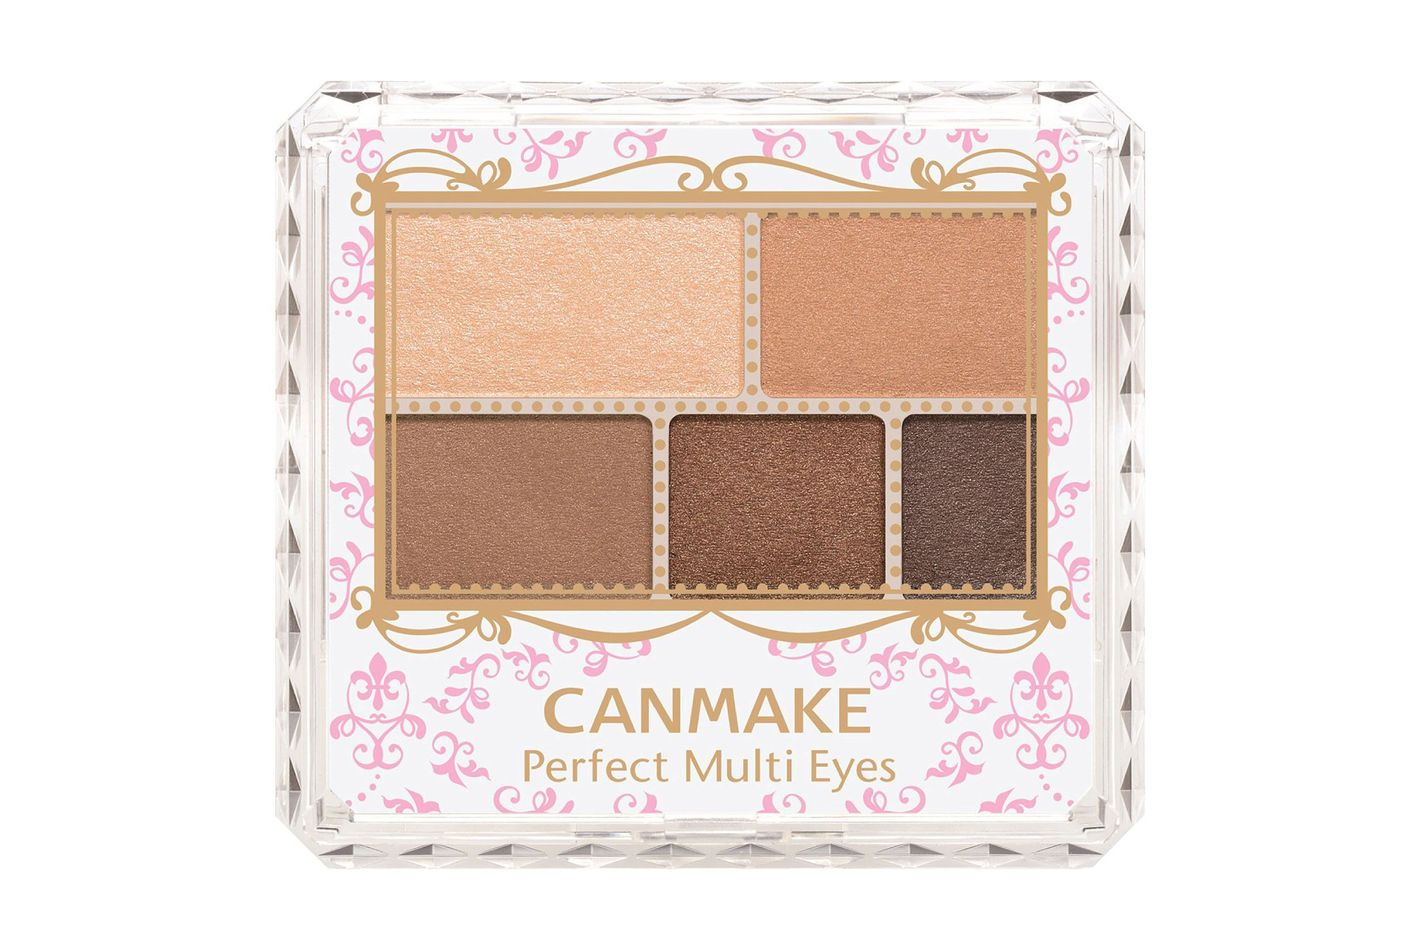 Canmake Perfect Multi Eye Pallet in Shade No. 02